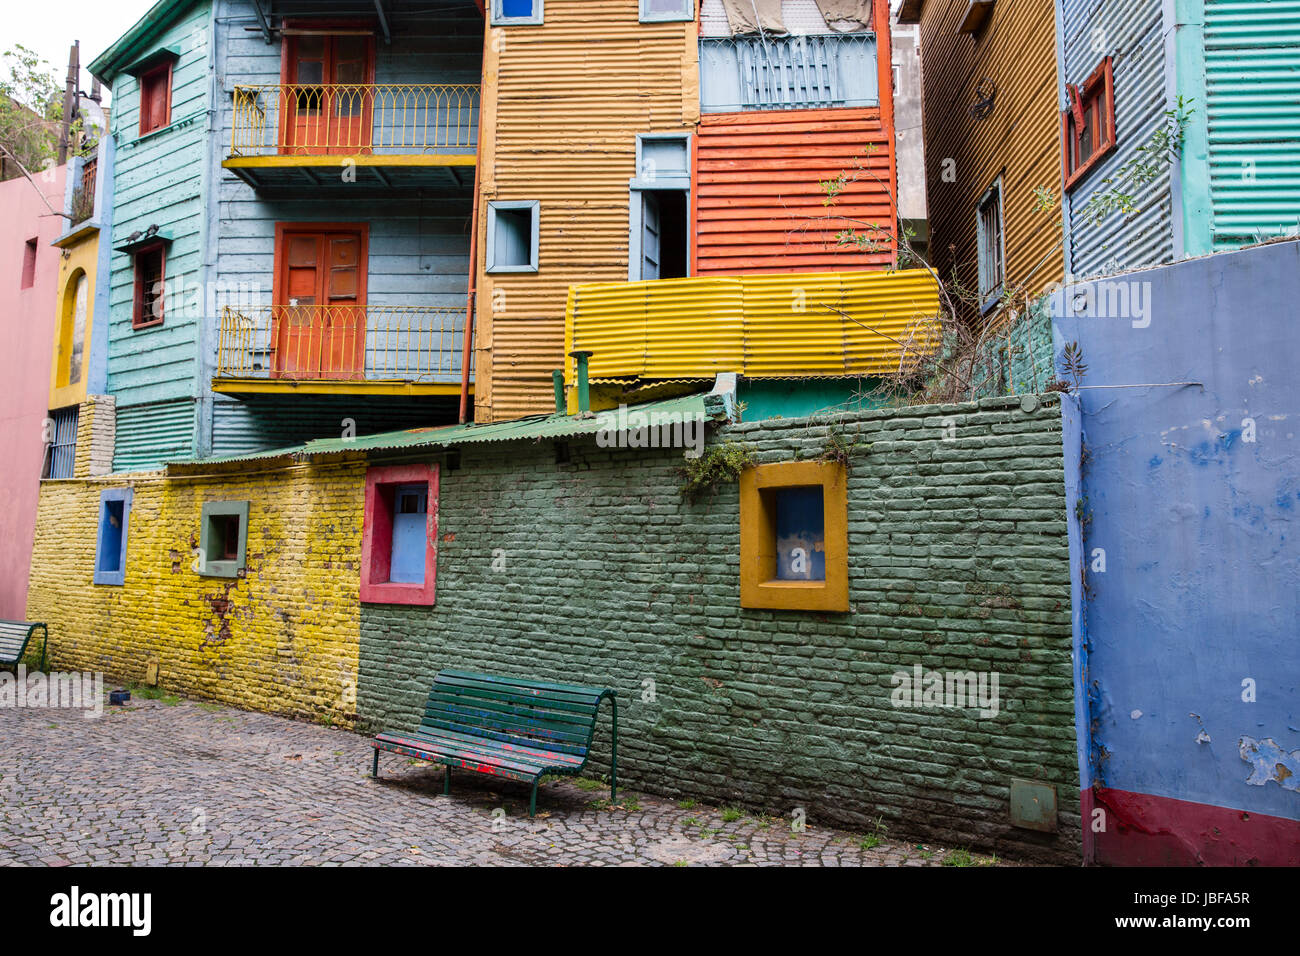 La Boca's Colorful Houses in Buenos Aires, Argentina - Stock Image